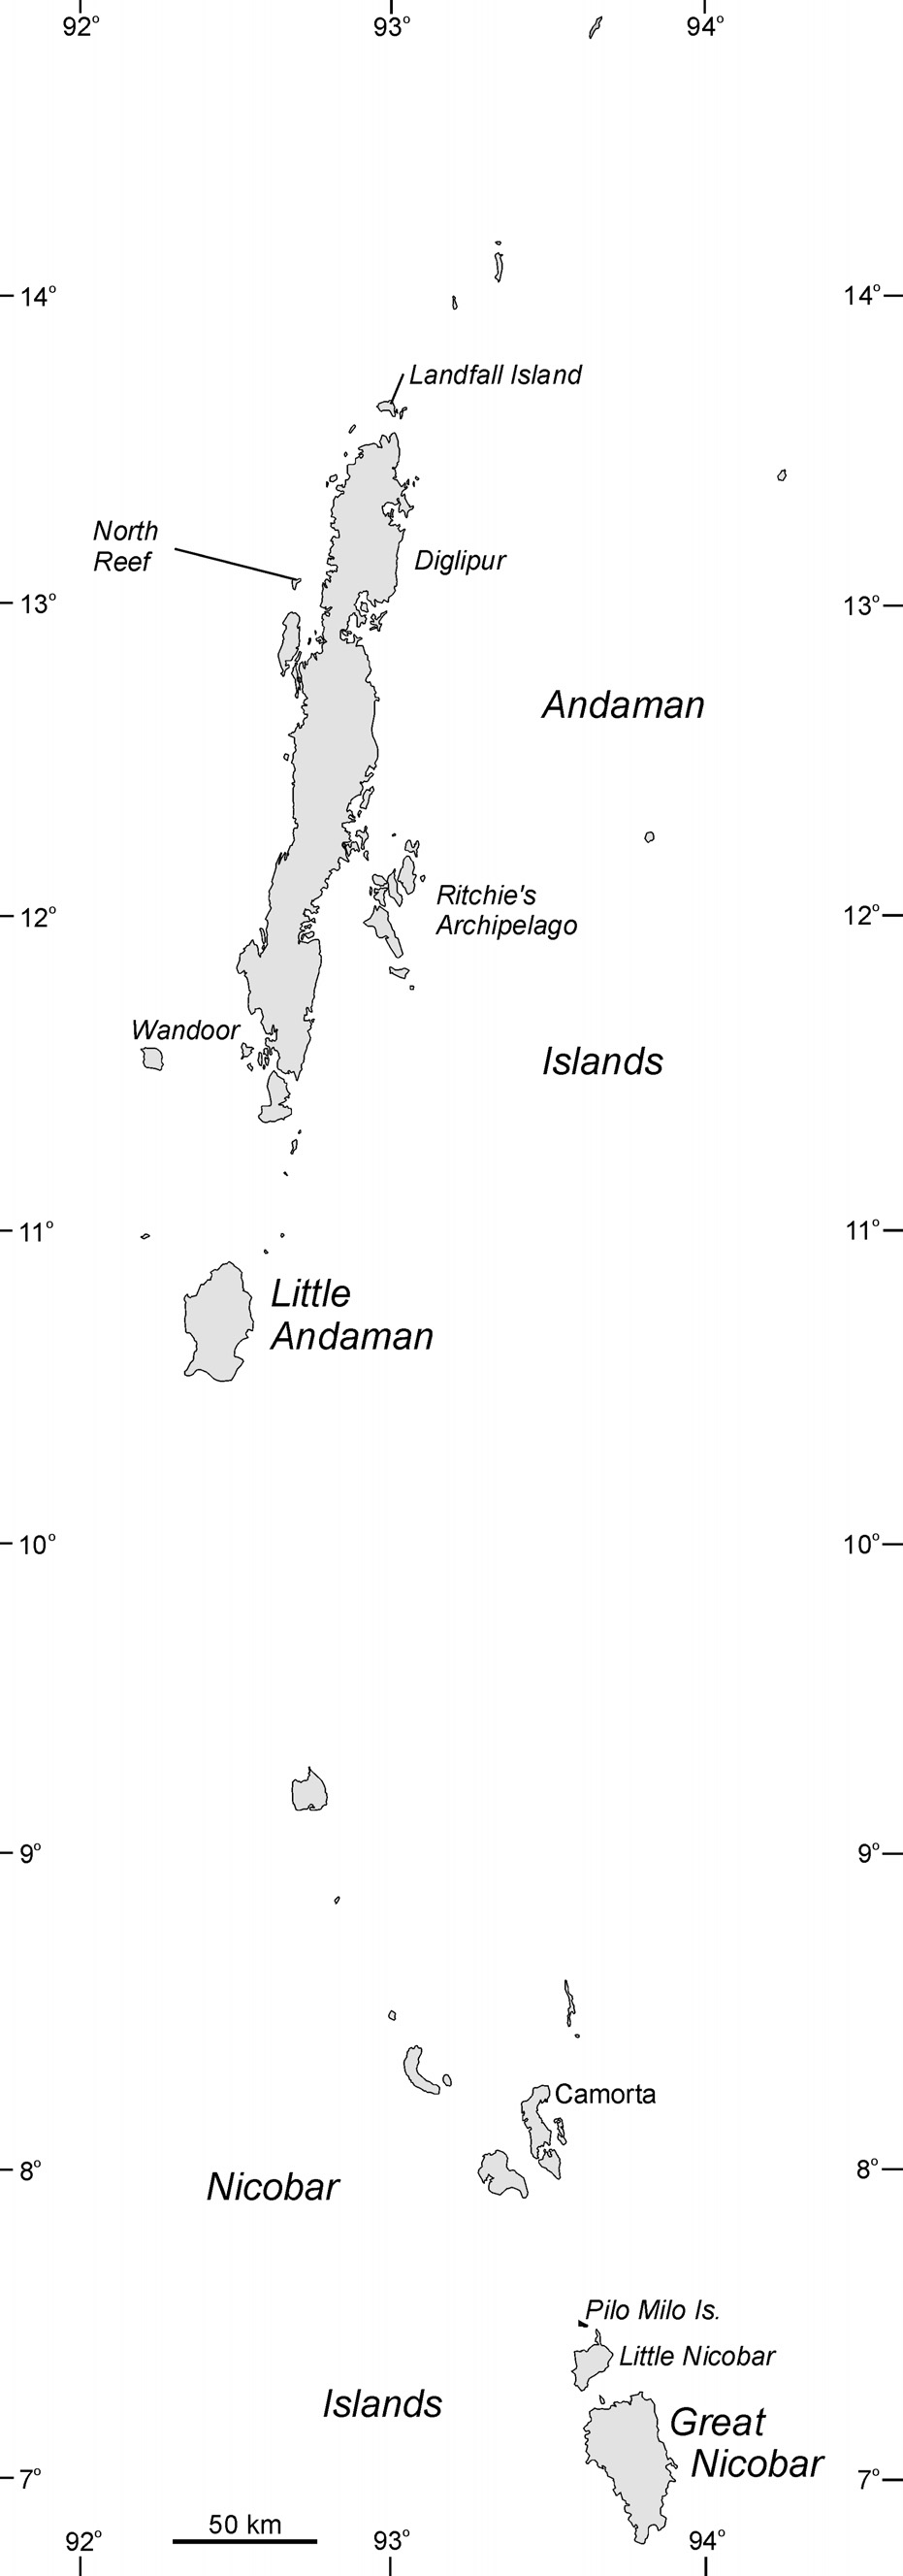 Figure 3.3 Andaman and Nicobar Islands showing place names mentioned in the text. (1989) concluded that Palk Strait and the Gulf of Mannar should be important areas for dugongs.